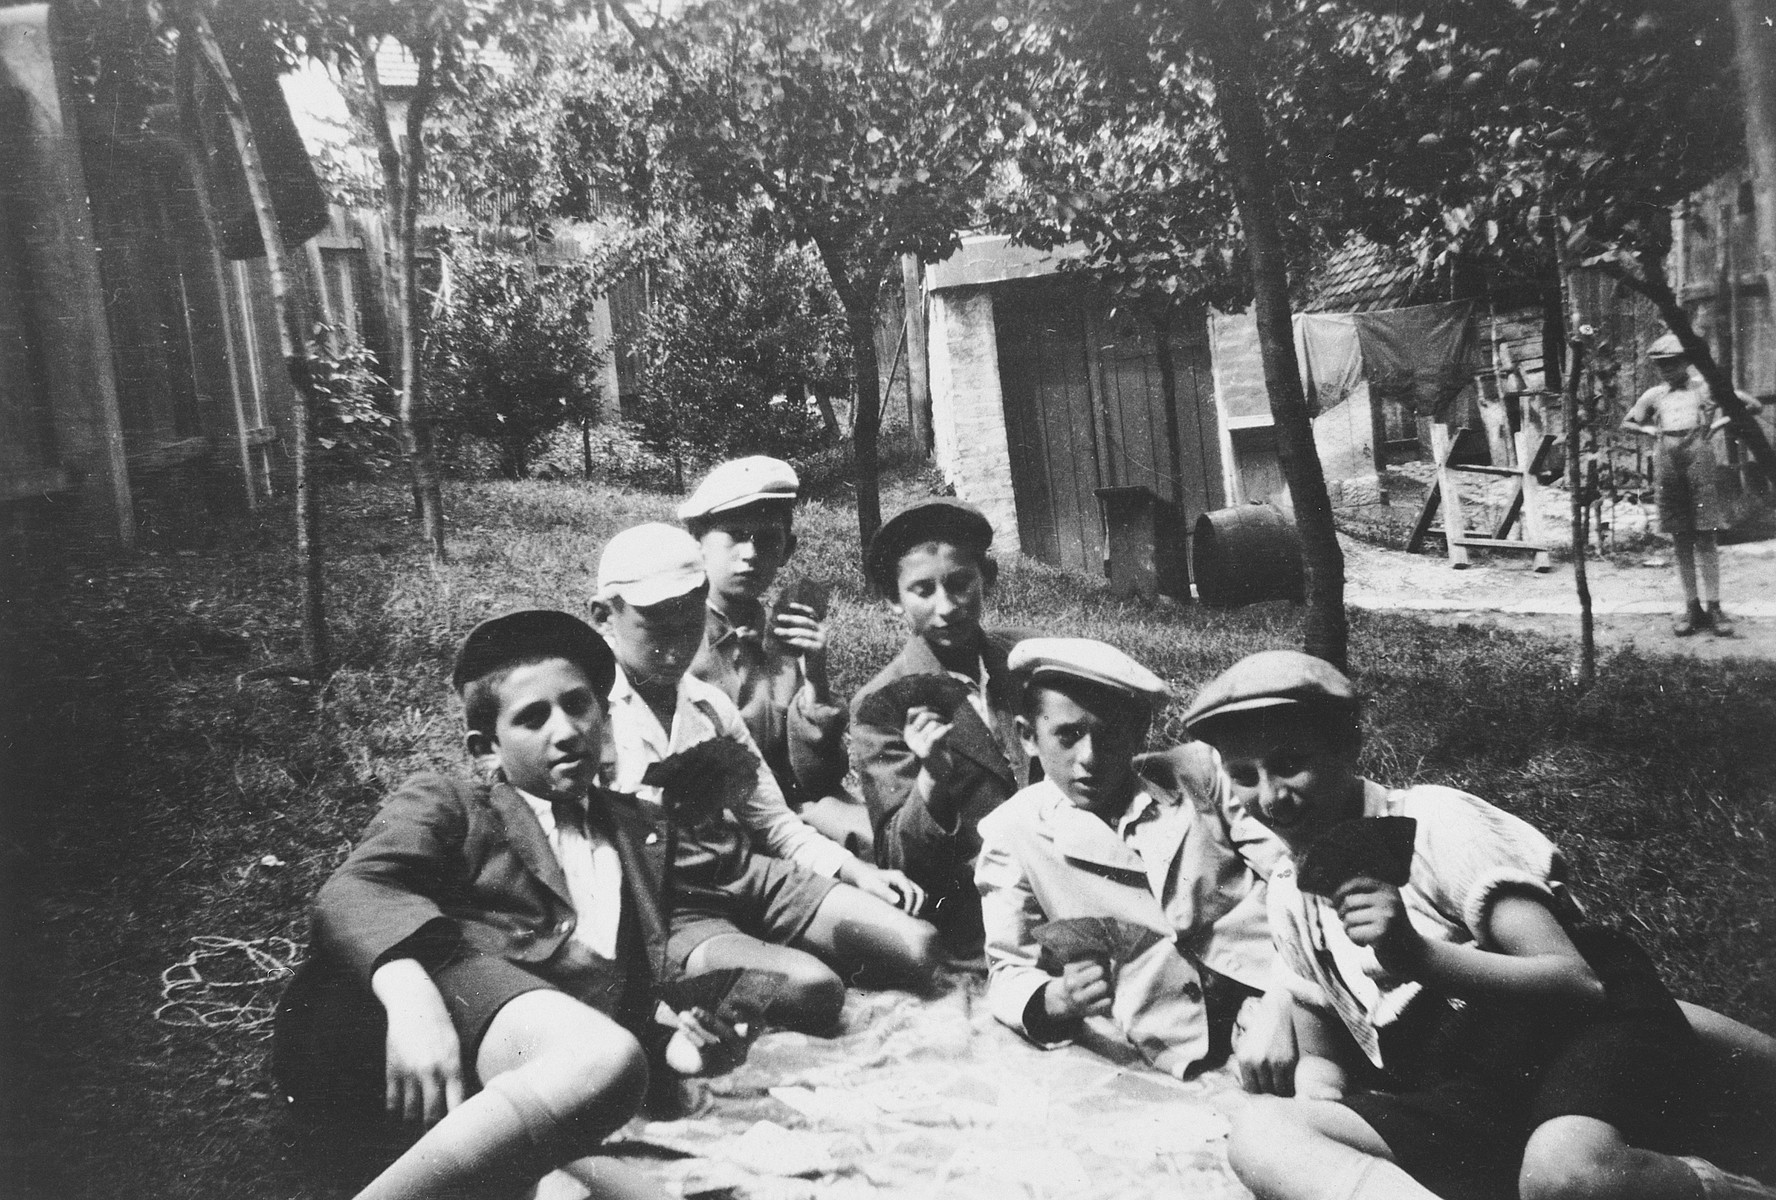 Boys in an Orthodox summer camp in Hungary play a game of cards on the lawn.